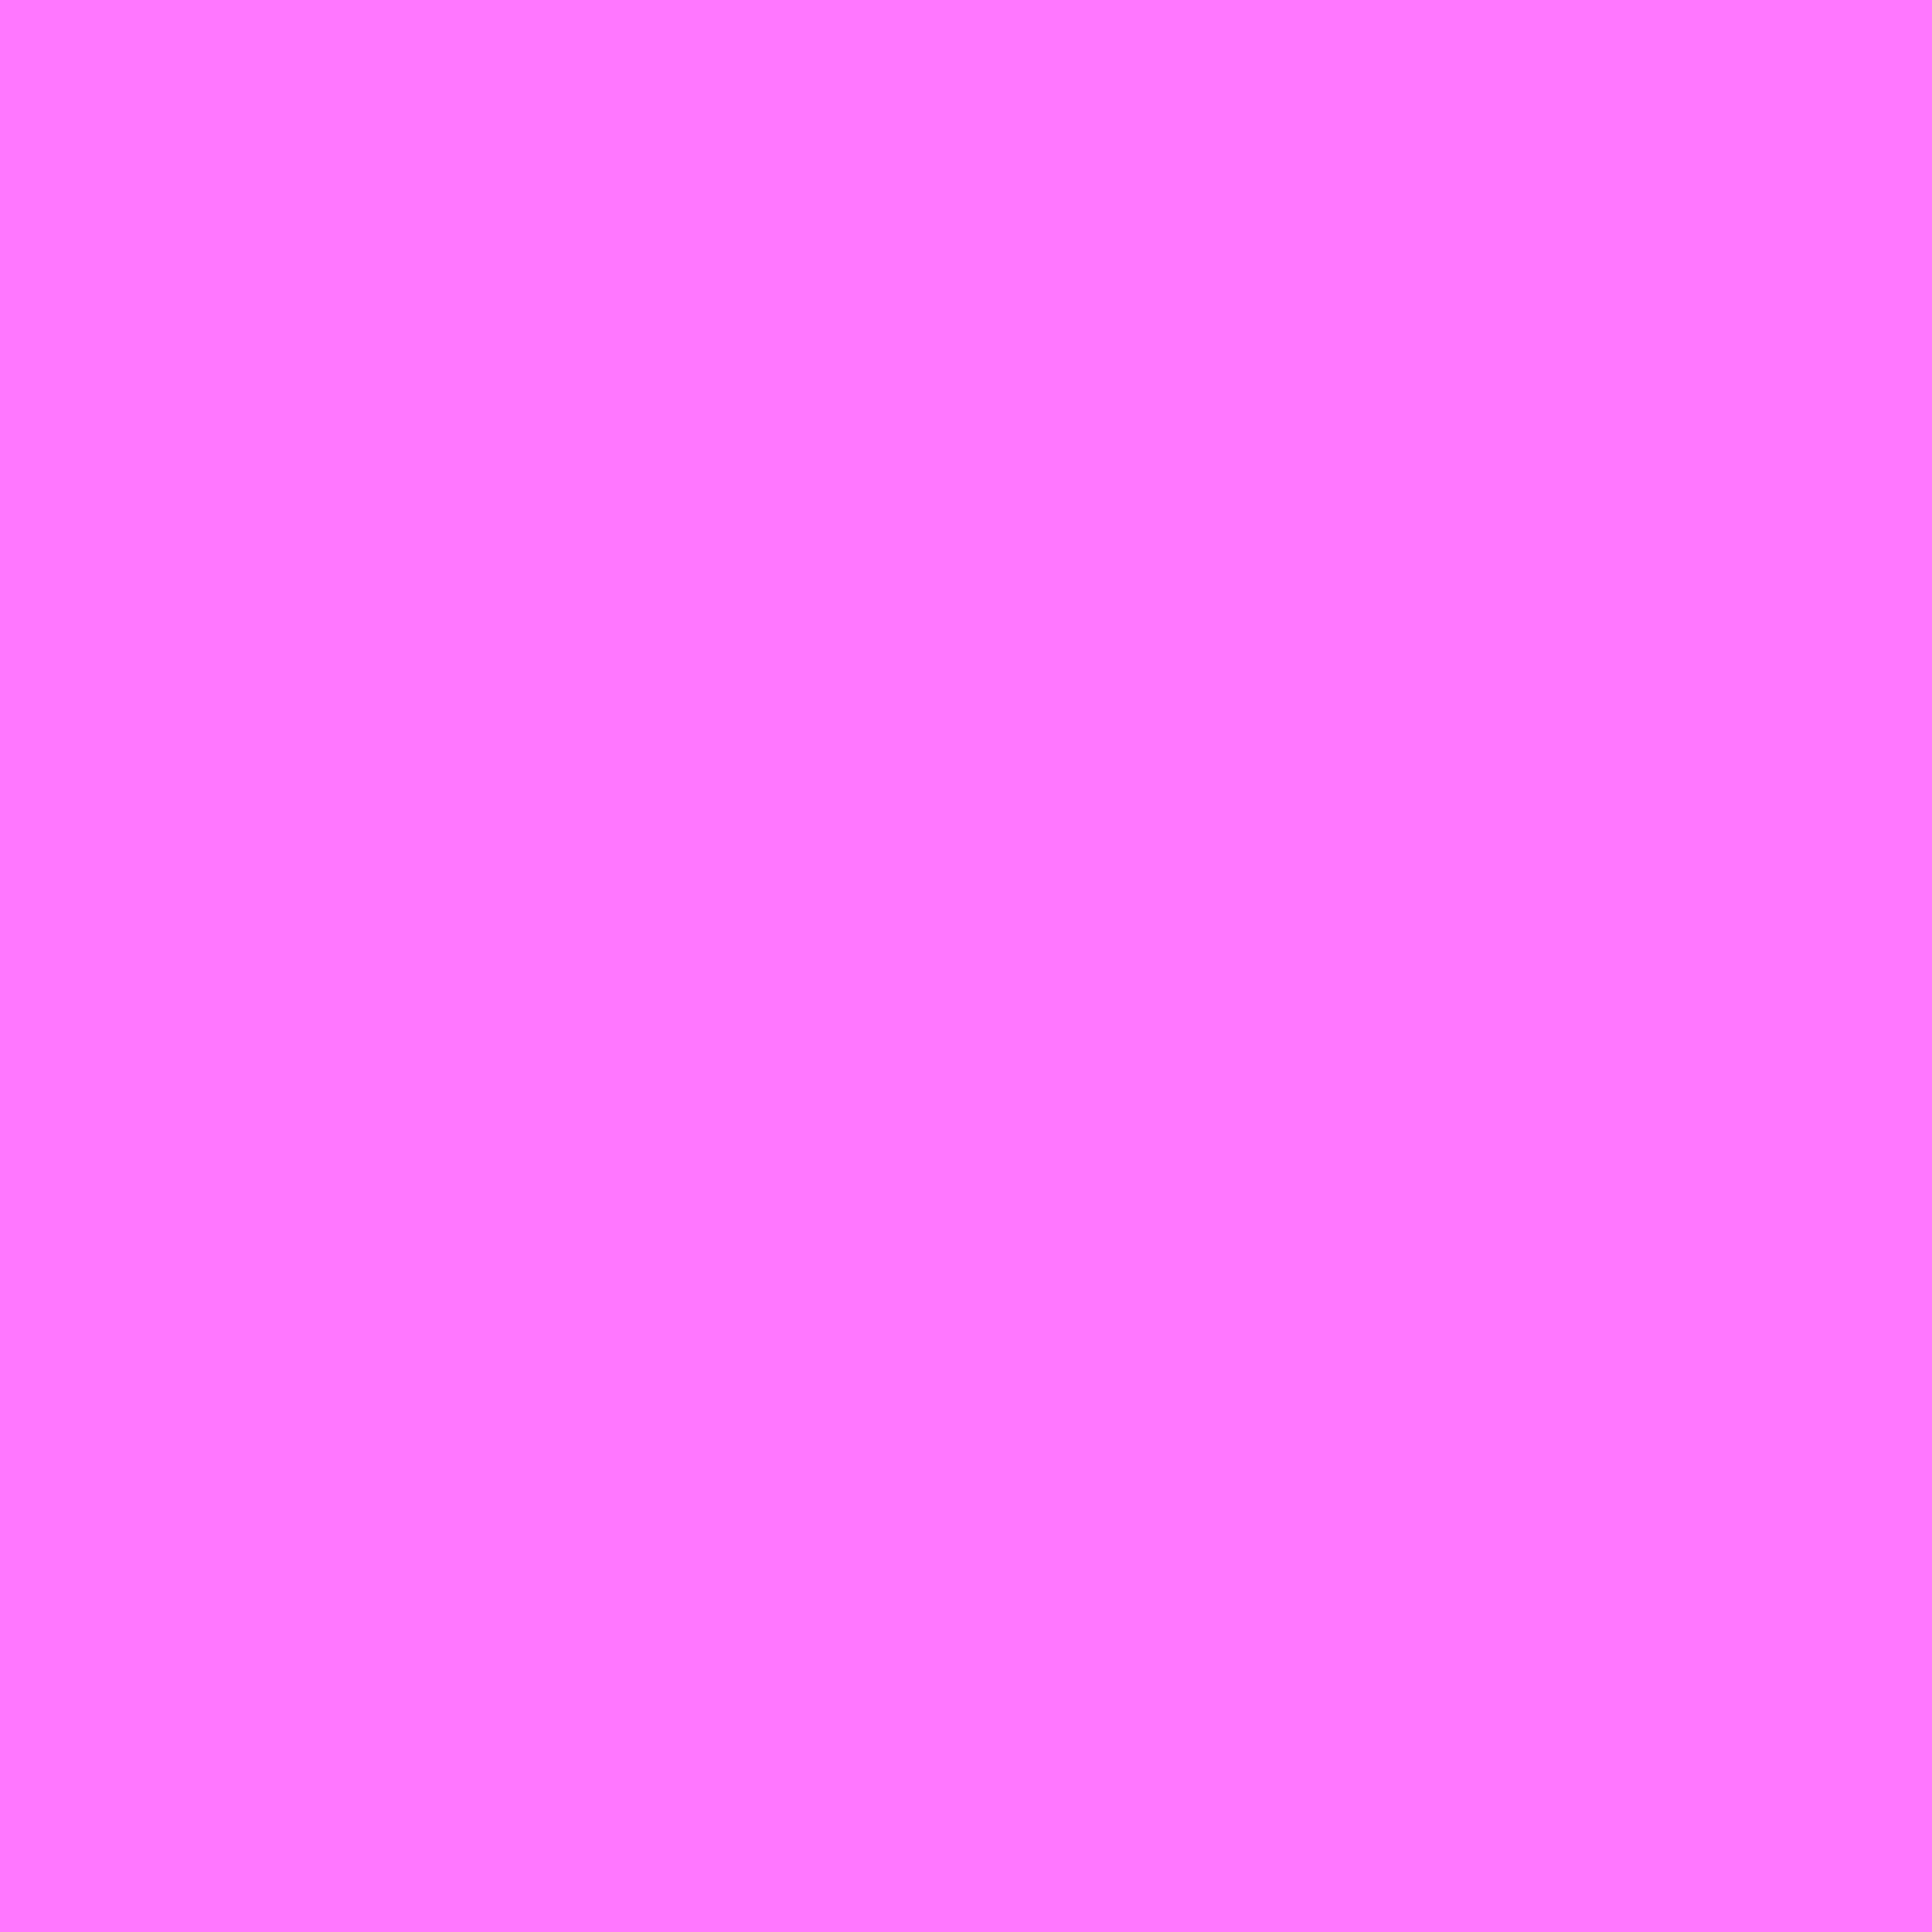 2732x2732 Fuchsia Pink Solid Color Background